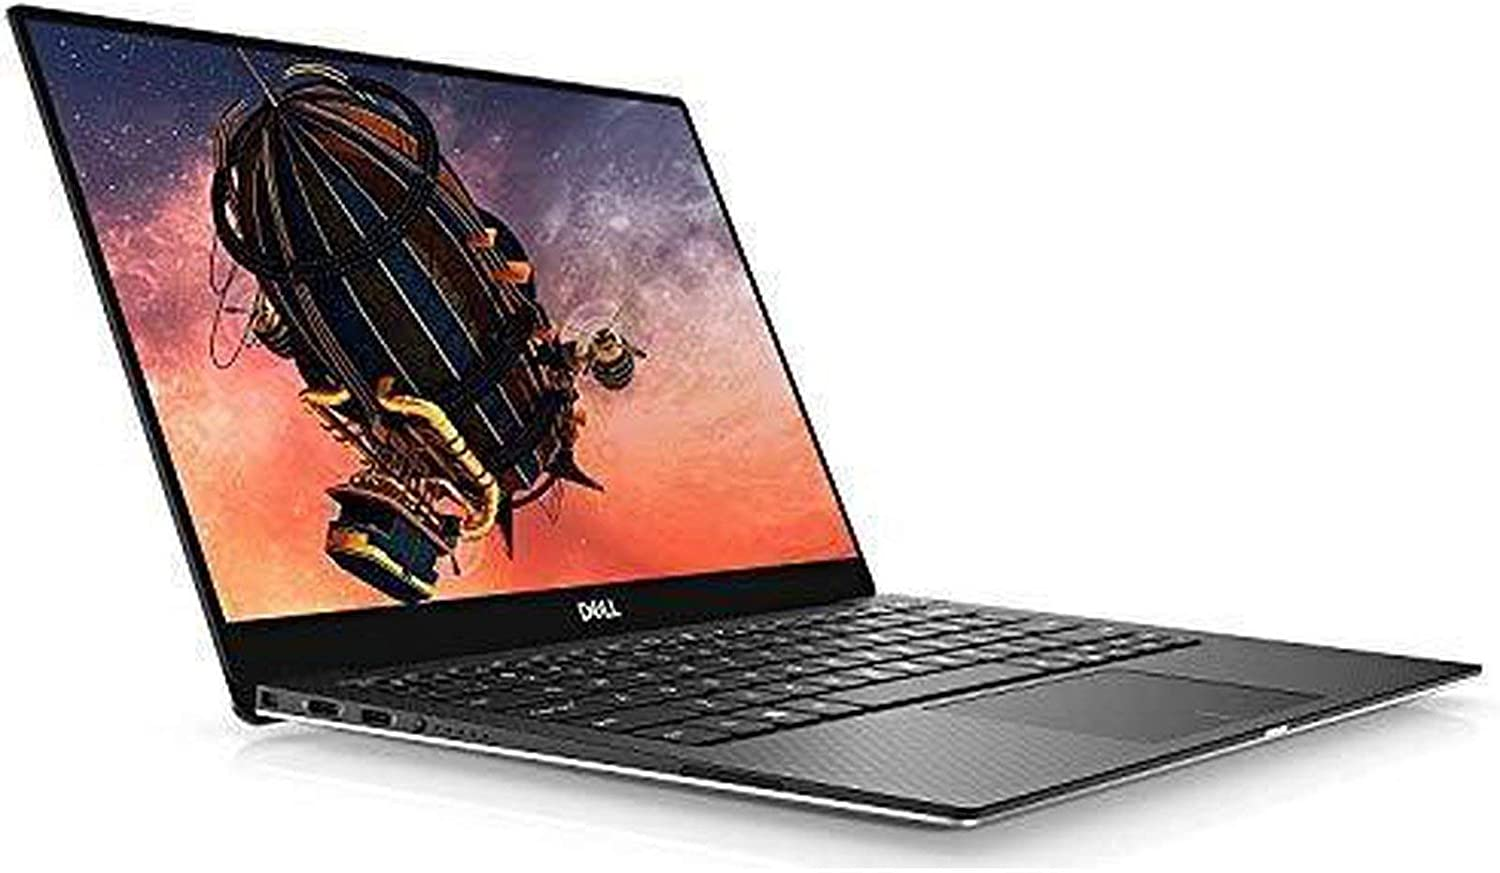 Dell XPS 13 - best overall laptop for information technology student